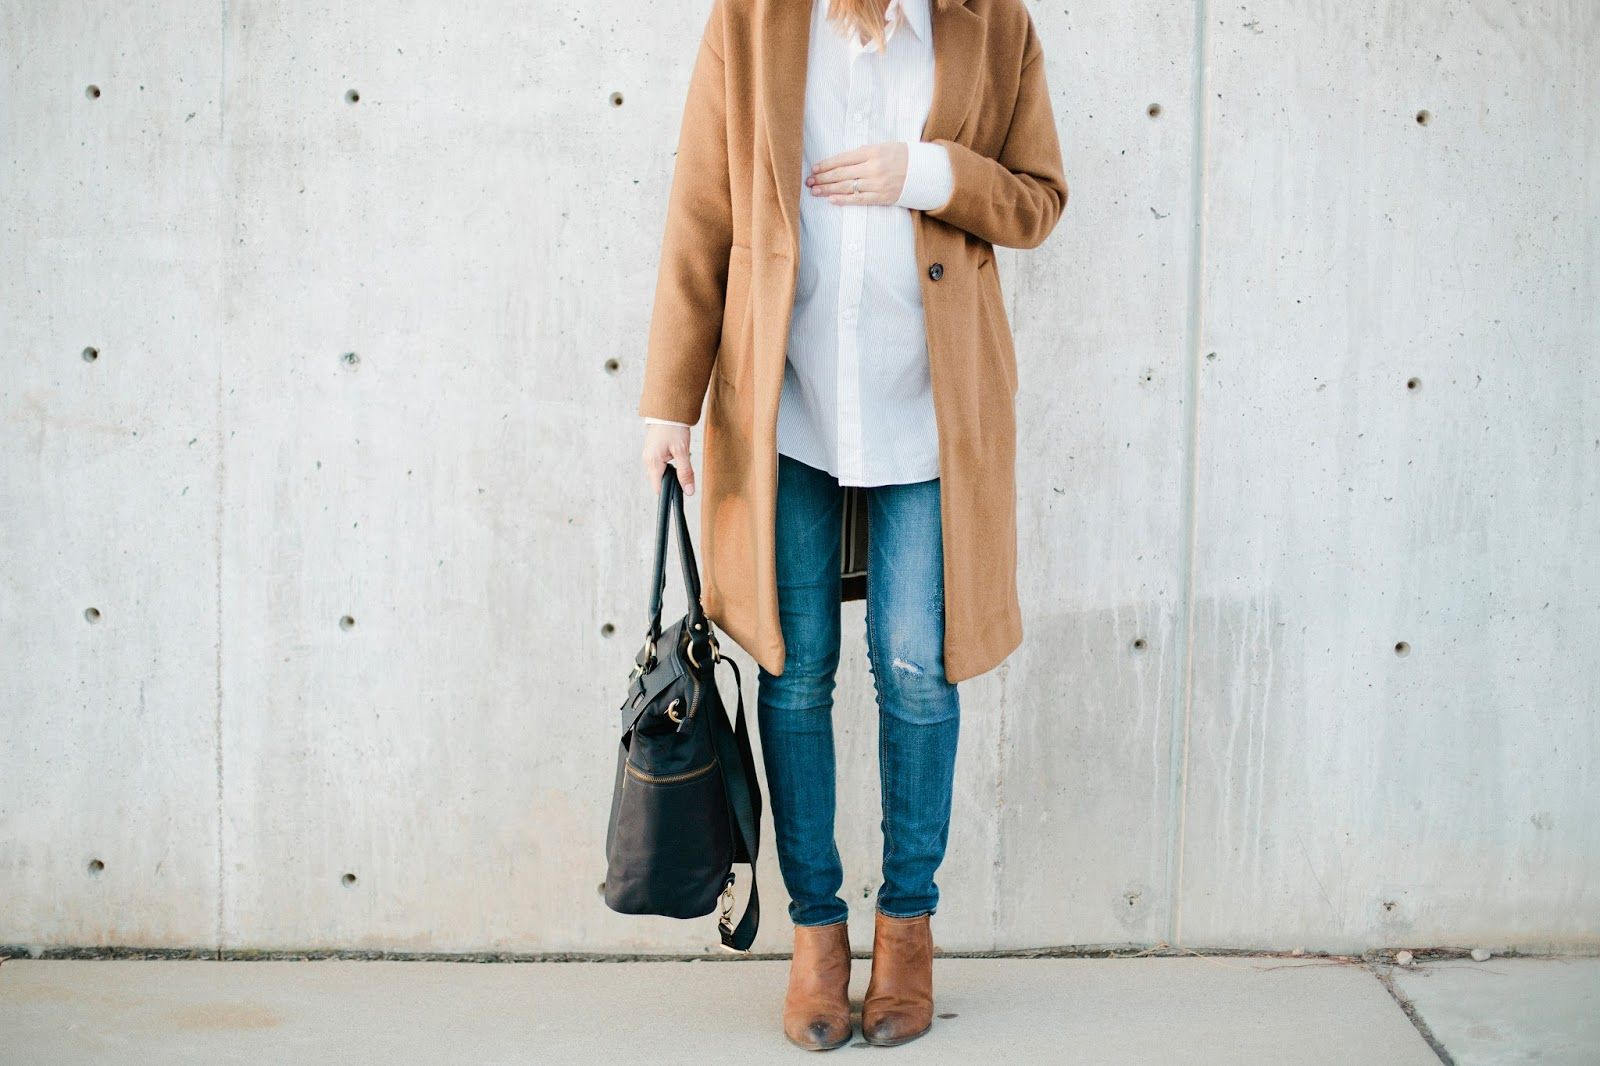 FALL MATERNITY STYLE | 37 WEEKS PREGNANT | MADEWELL, H&M, NEWLIE CO DIAPER BAG, FAMOUS FOOTWEAR